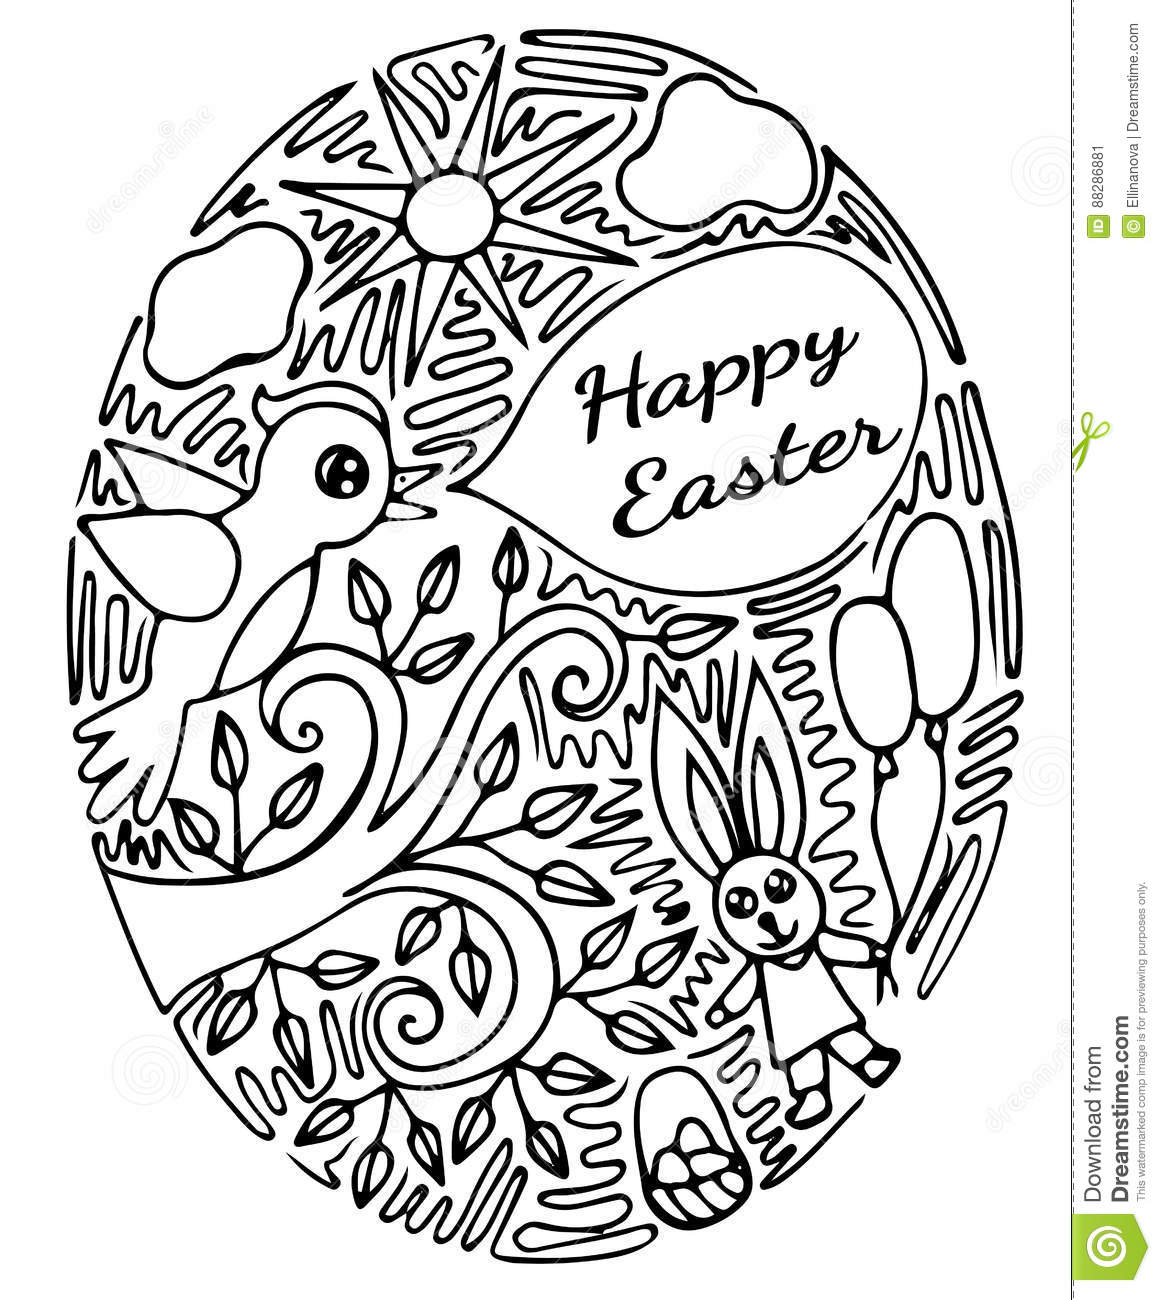 photograph relating to Printable Easter Egg identified as Printable Easter Egg With Hen Within Ornate Body Inventory Vector